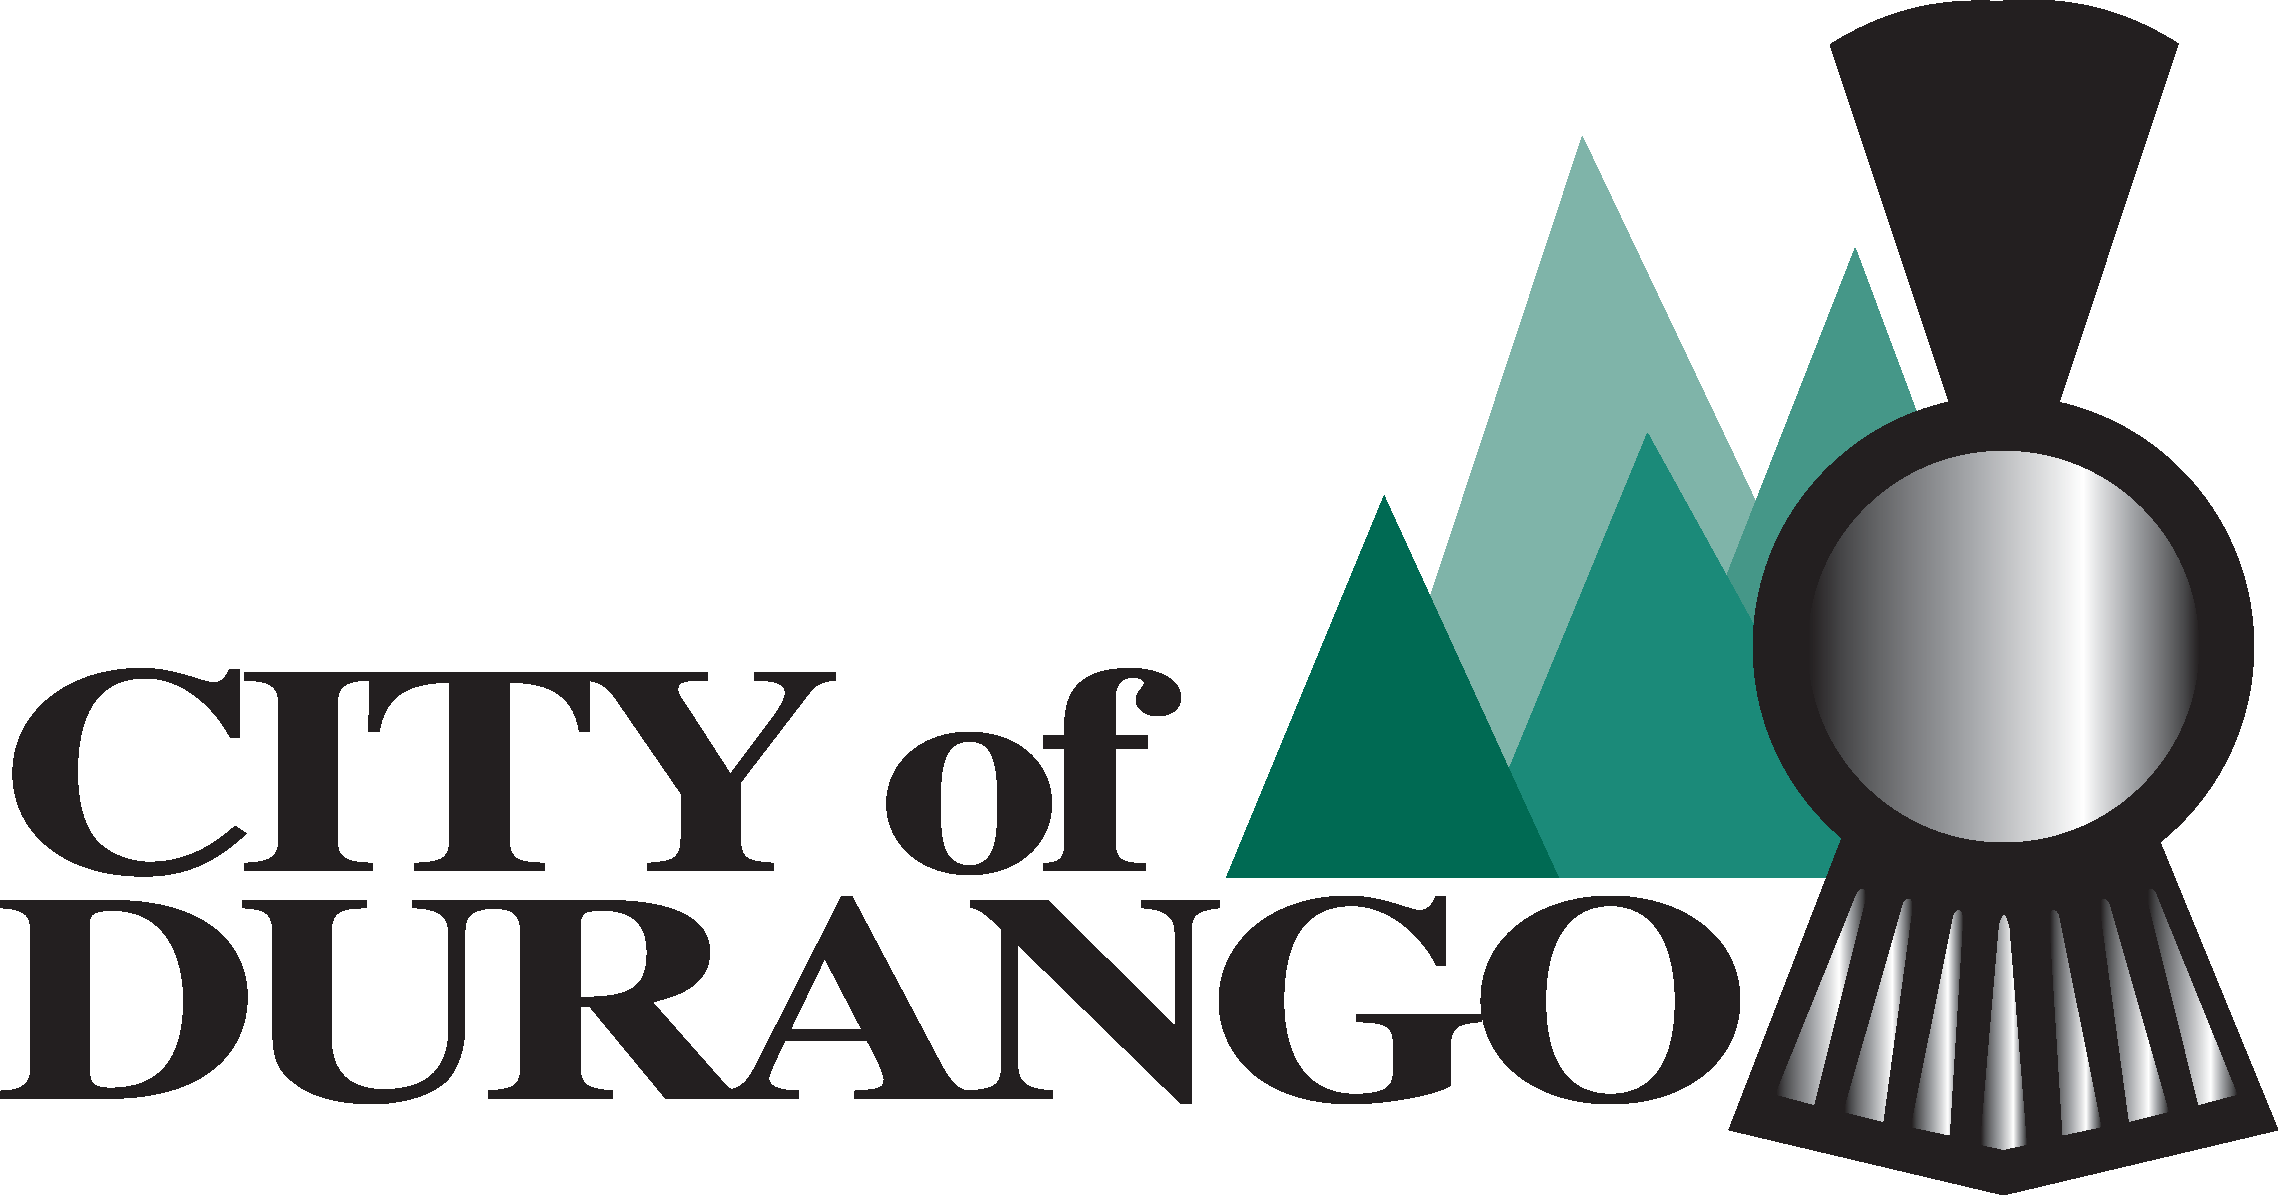 City of Durango Recycling